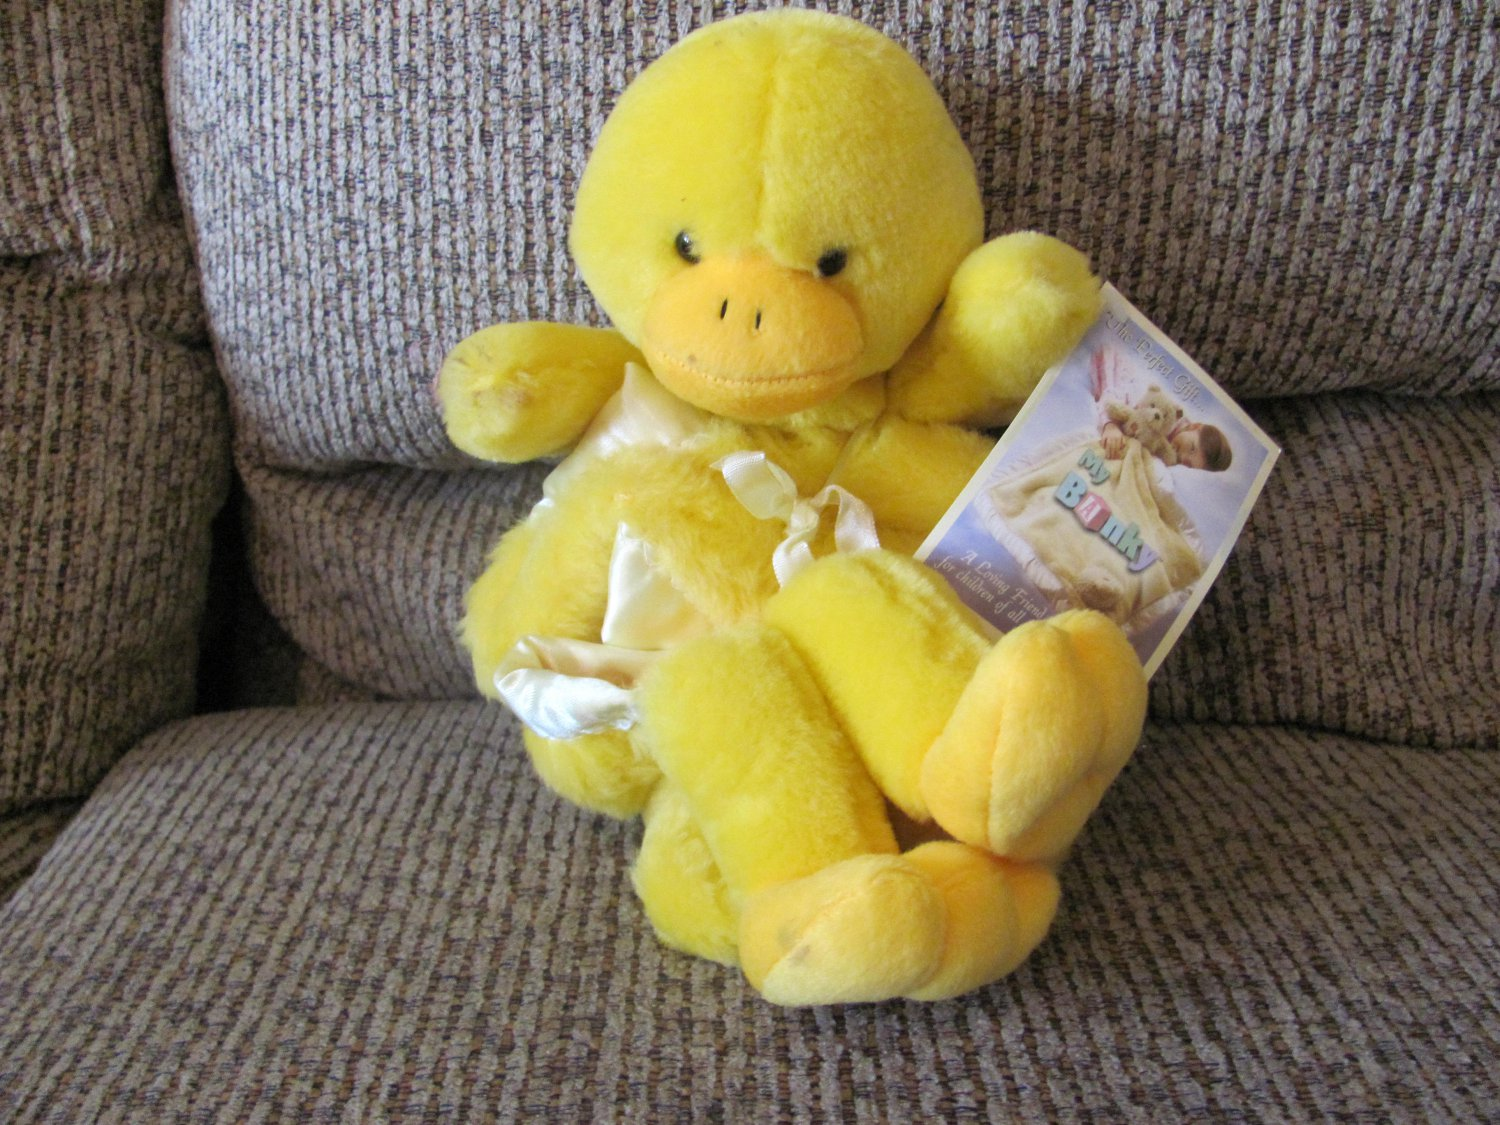 NWT My Banky Sarah Yellow Orange Duck Small Duckling Security Blanket Lovey Plush